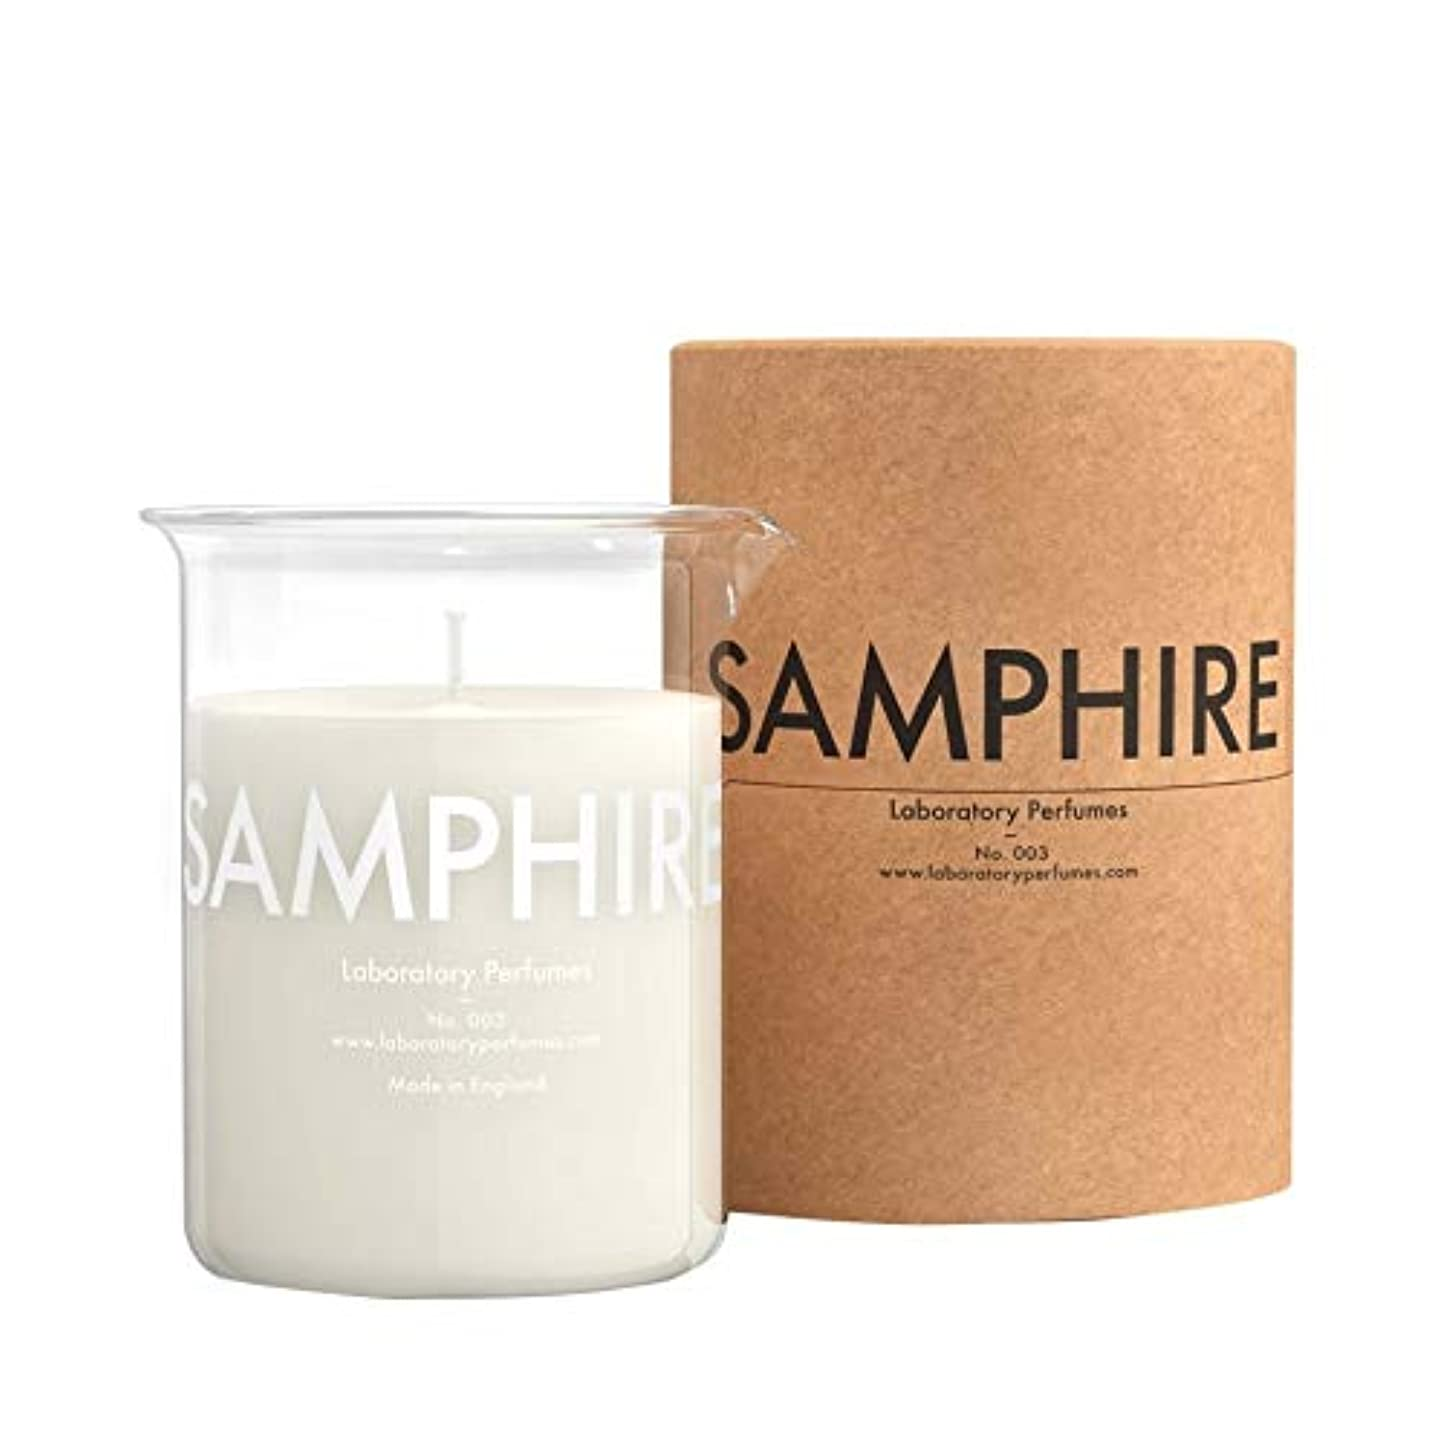 銀行品岸[Laboratory Perfumes ] 実験室の香水なし。 033 Samphireフレグランスキャンドル - Laboratory Perfumes No. 033 Samphire Fragranced Candle...